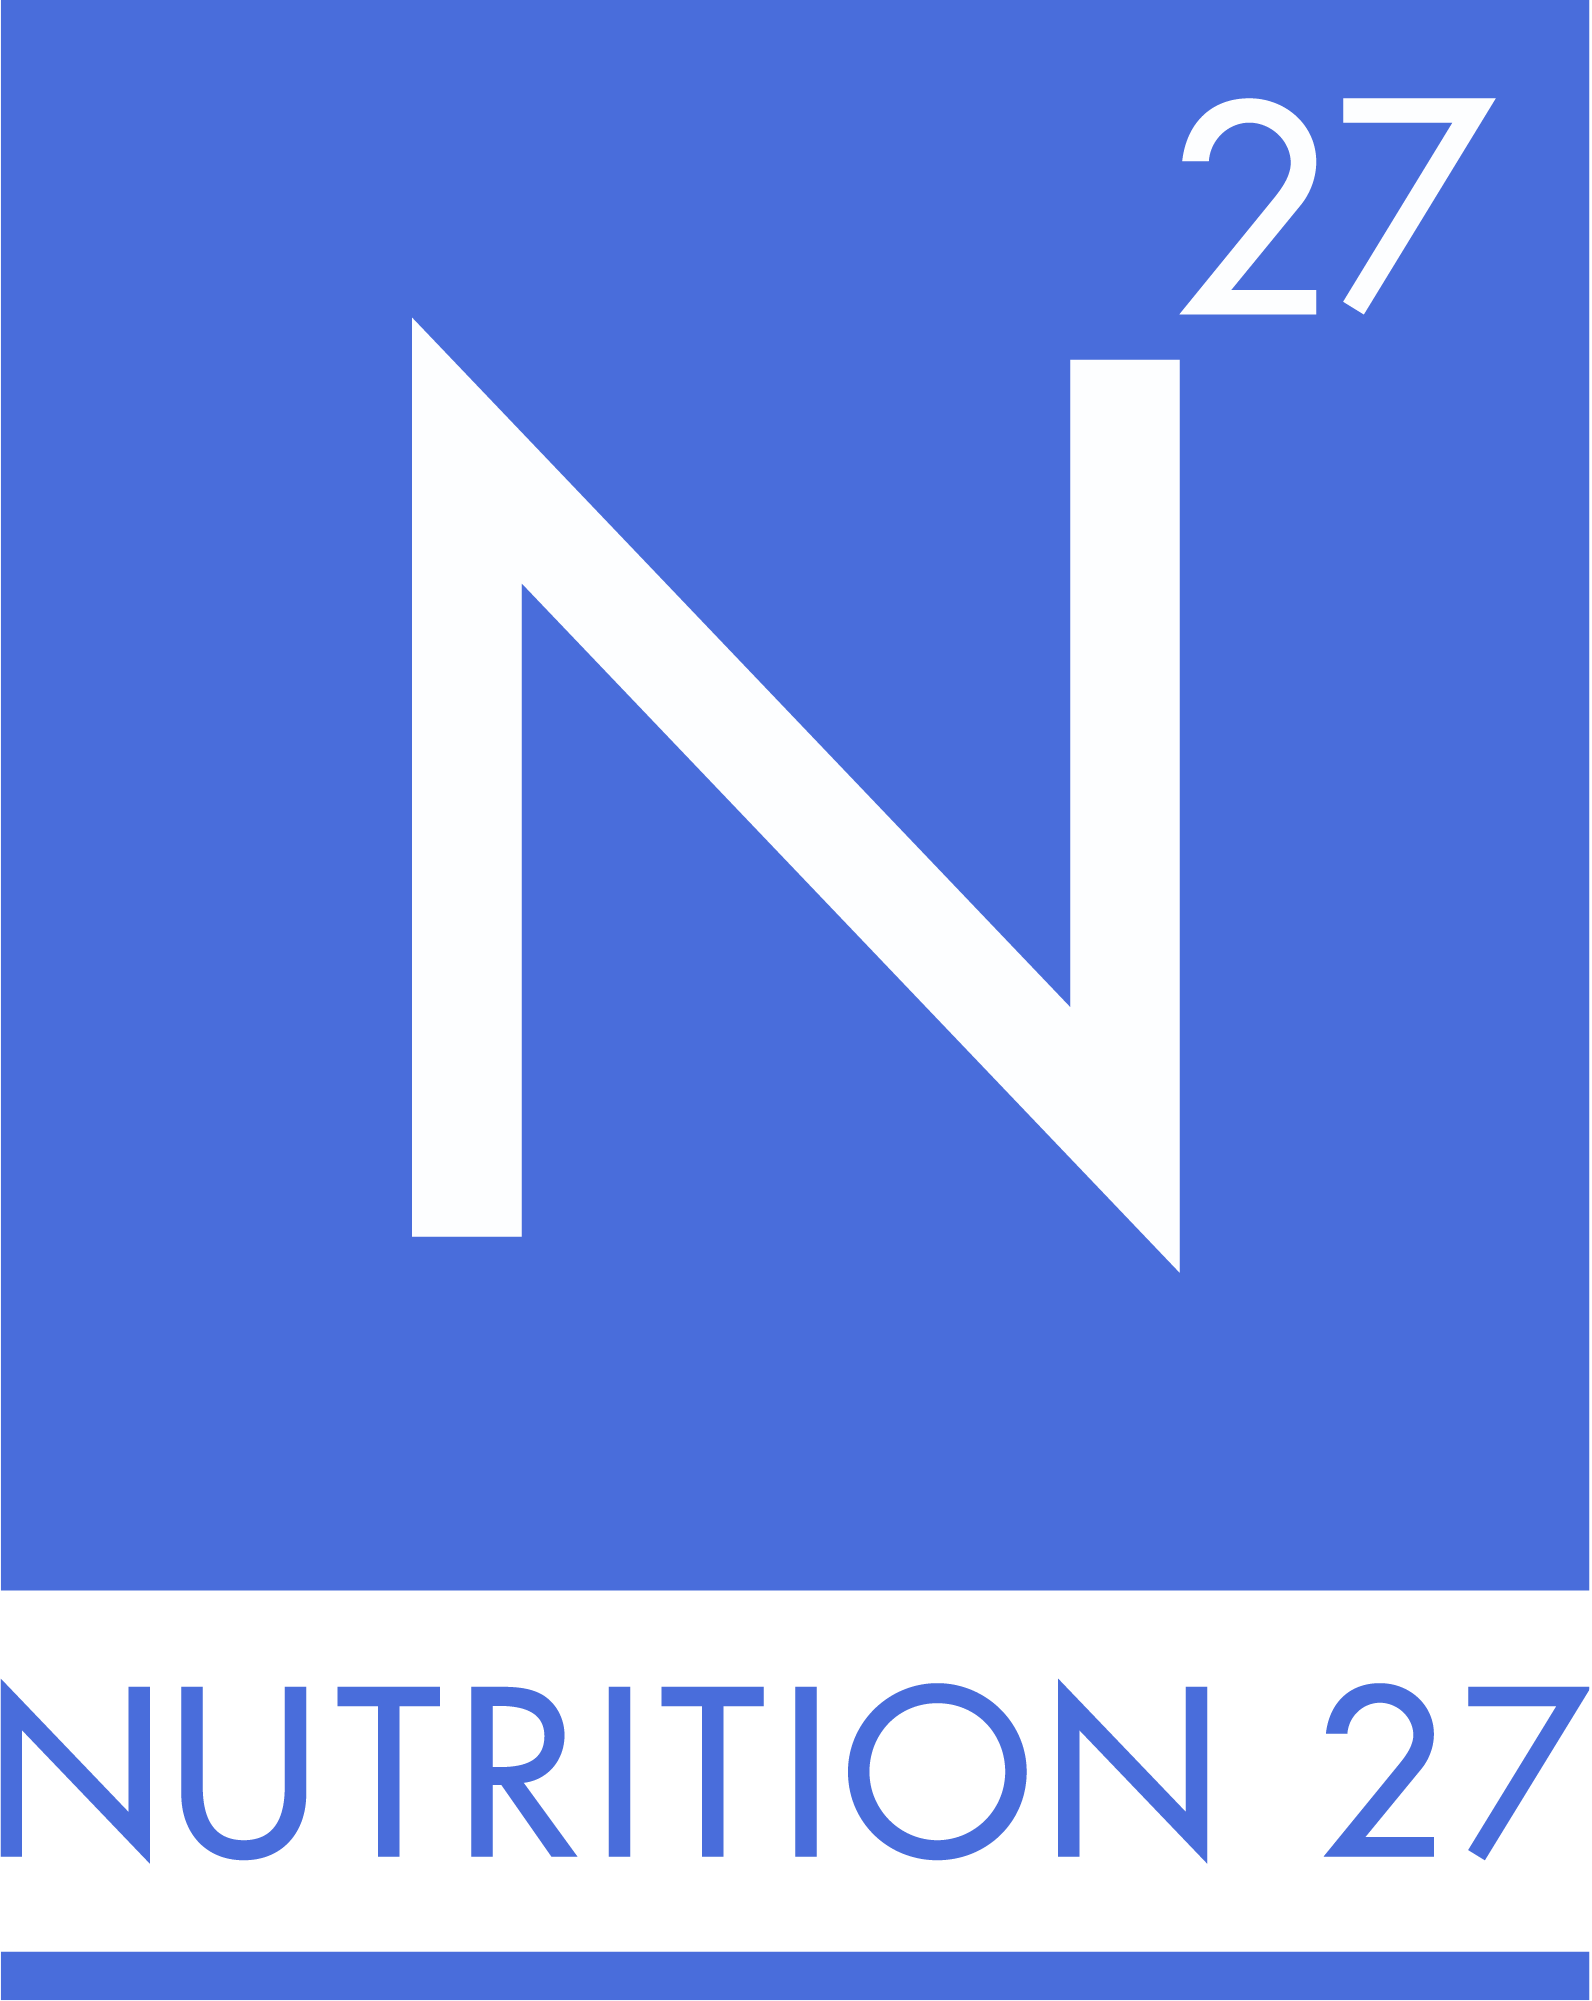 Nutrition 27